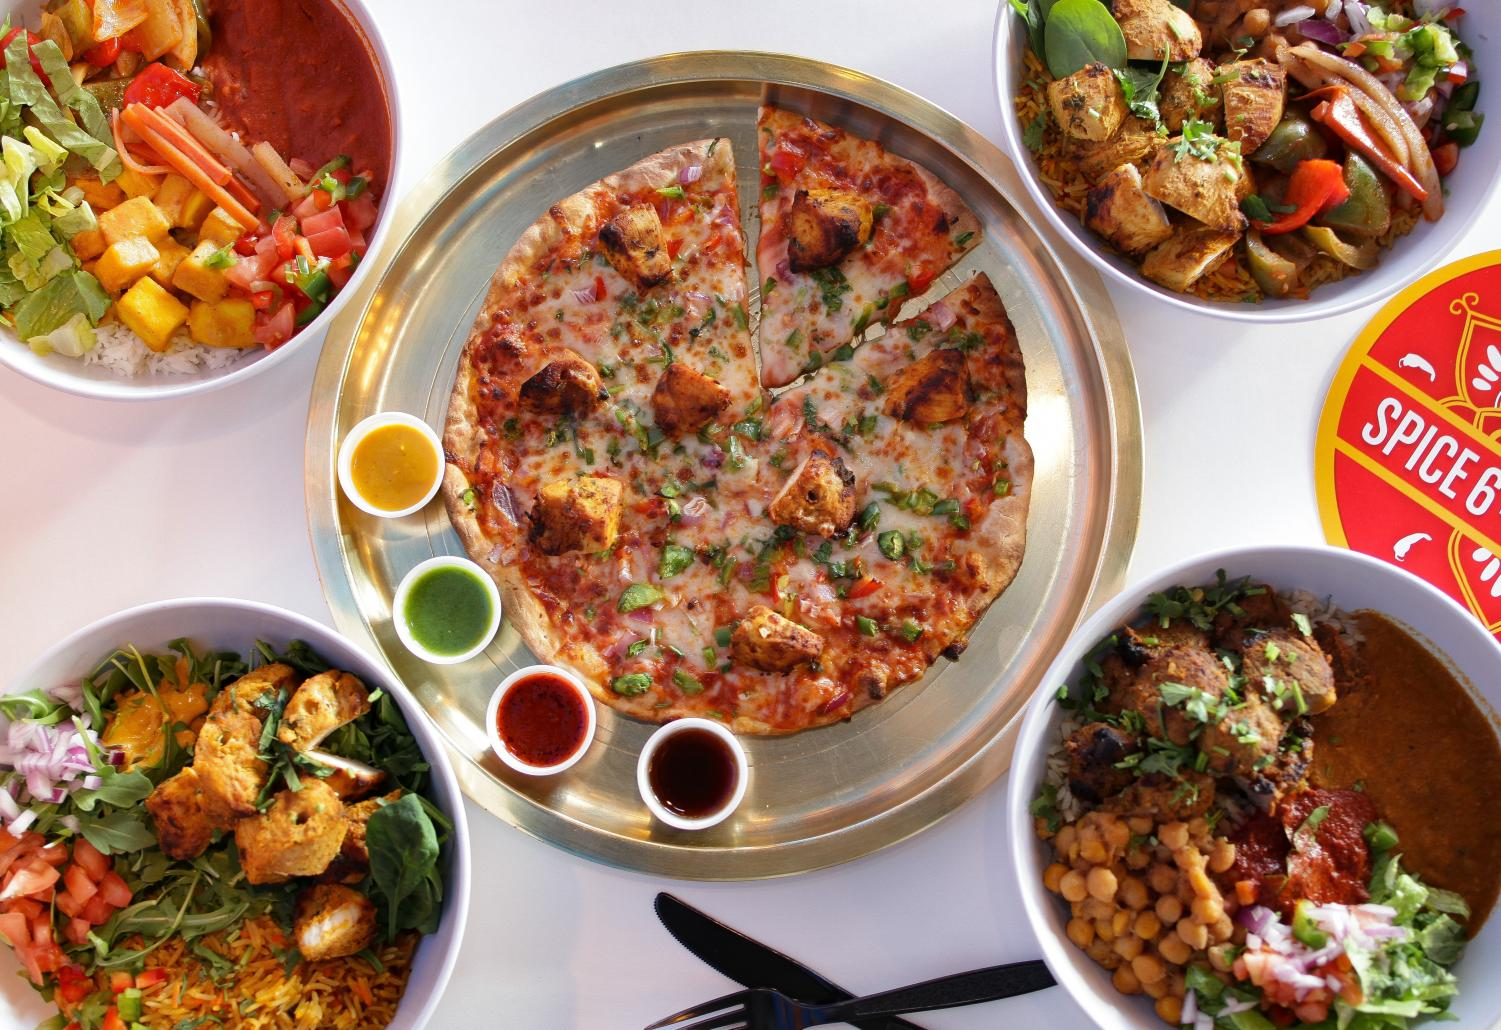 Spice 6's opening in Montgomery Mall brings a bigger range of food options.